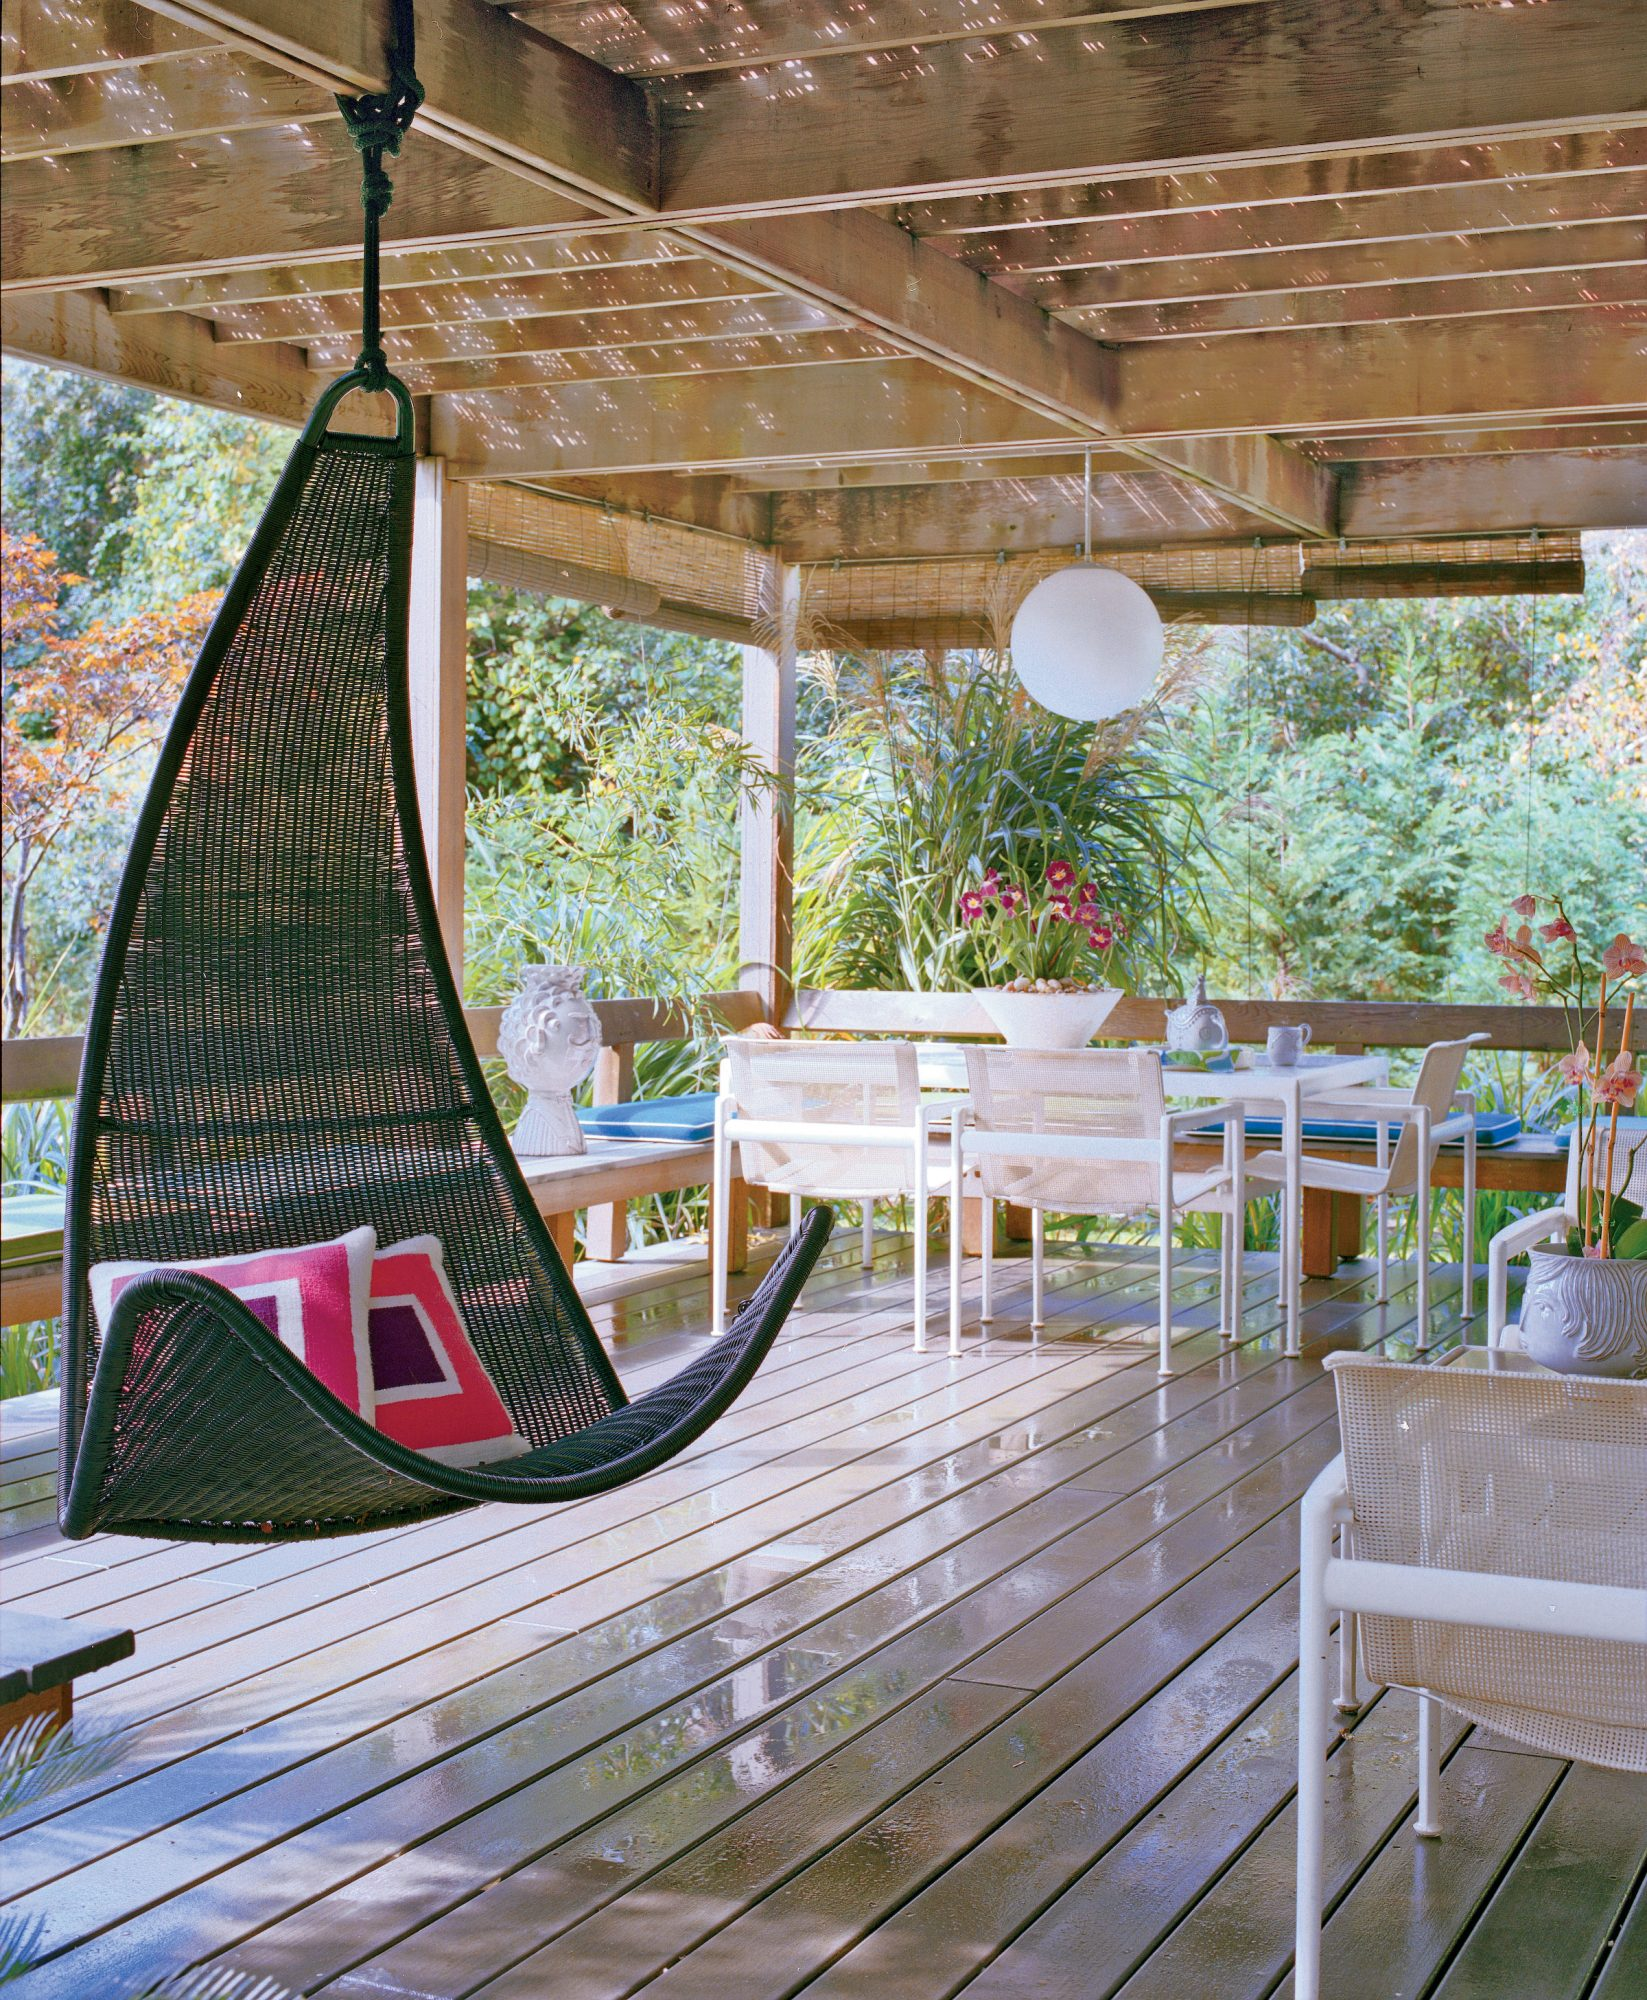 A contemporary hanging swing and a paper lantern complements the streamlined feel to this covered porch.